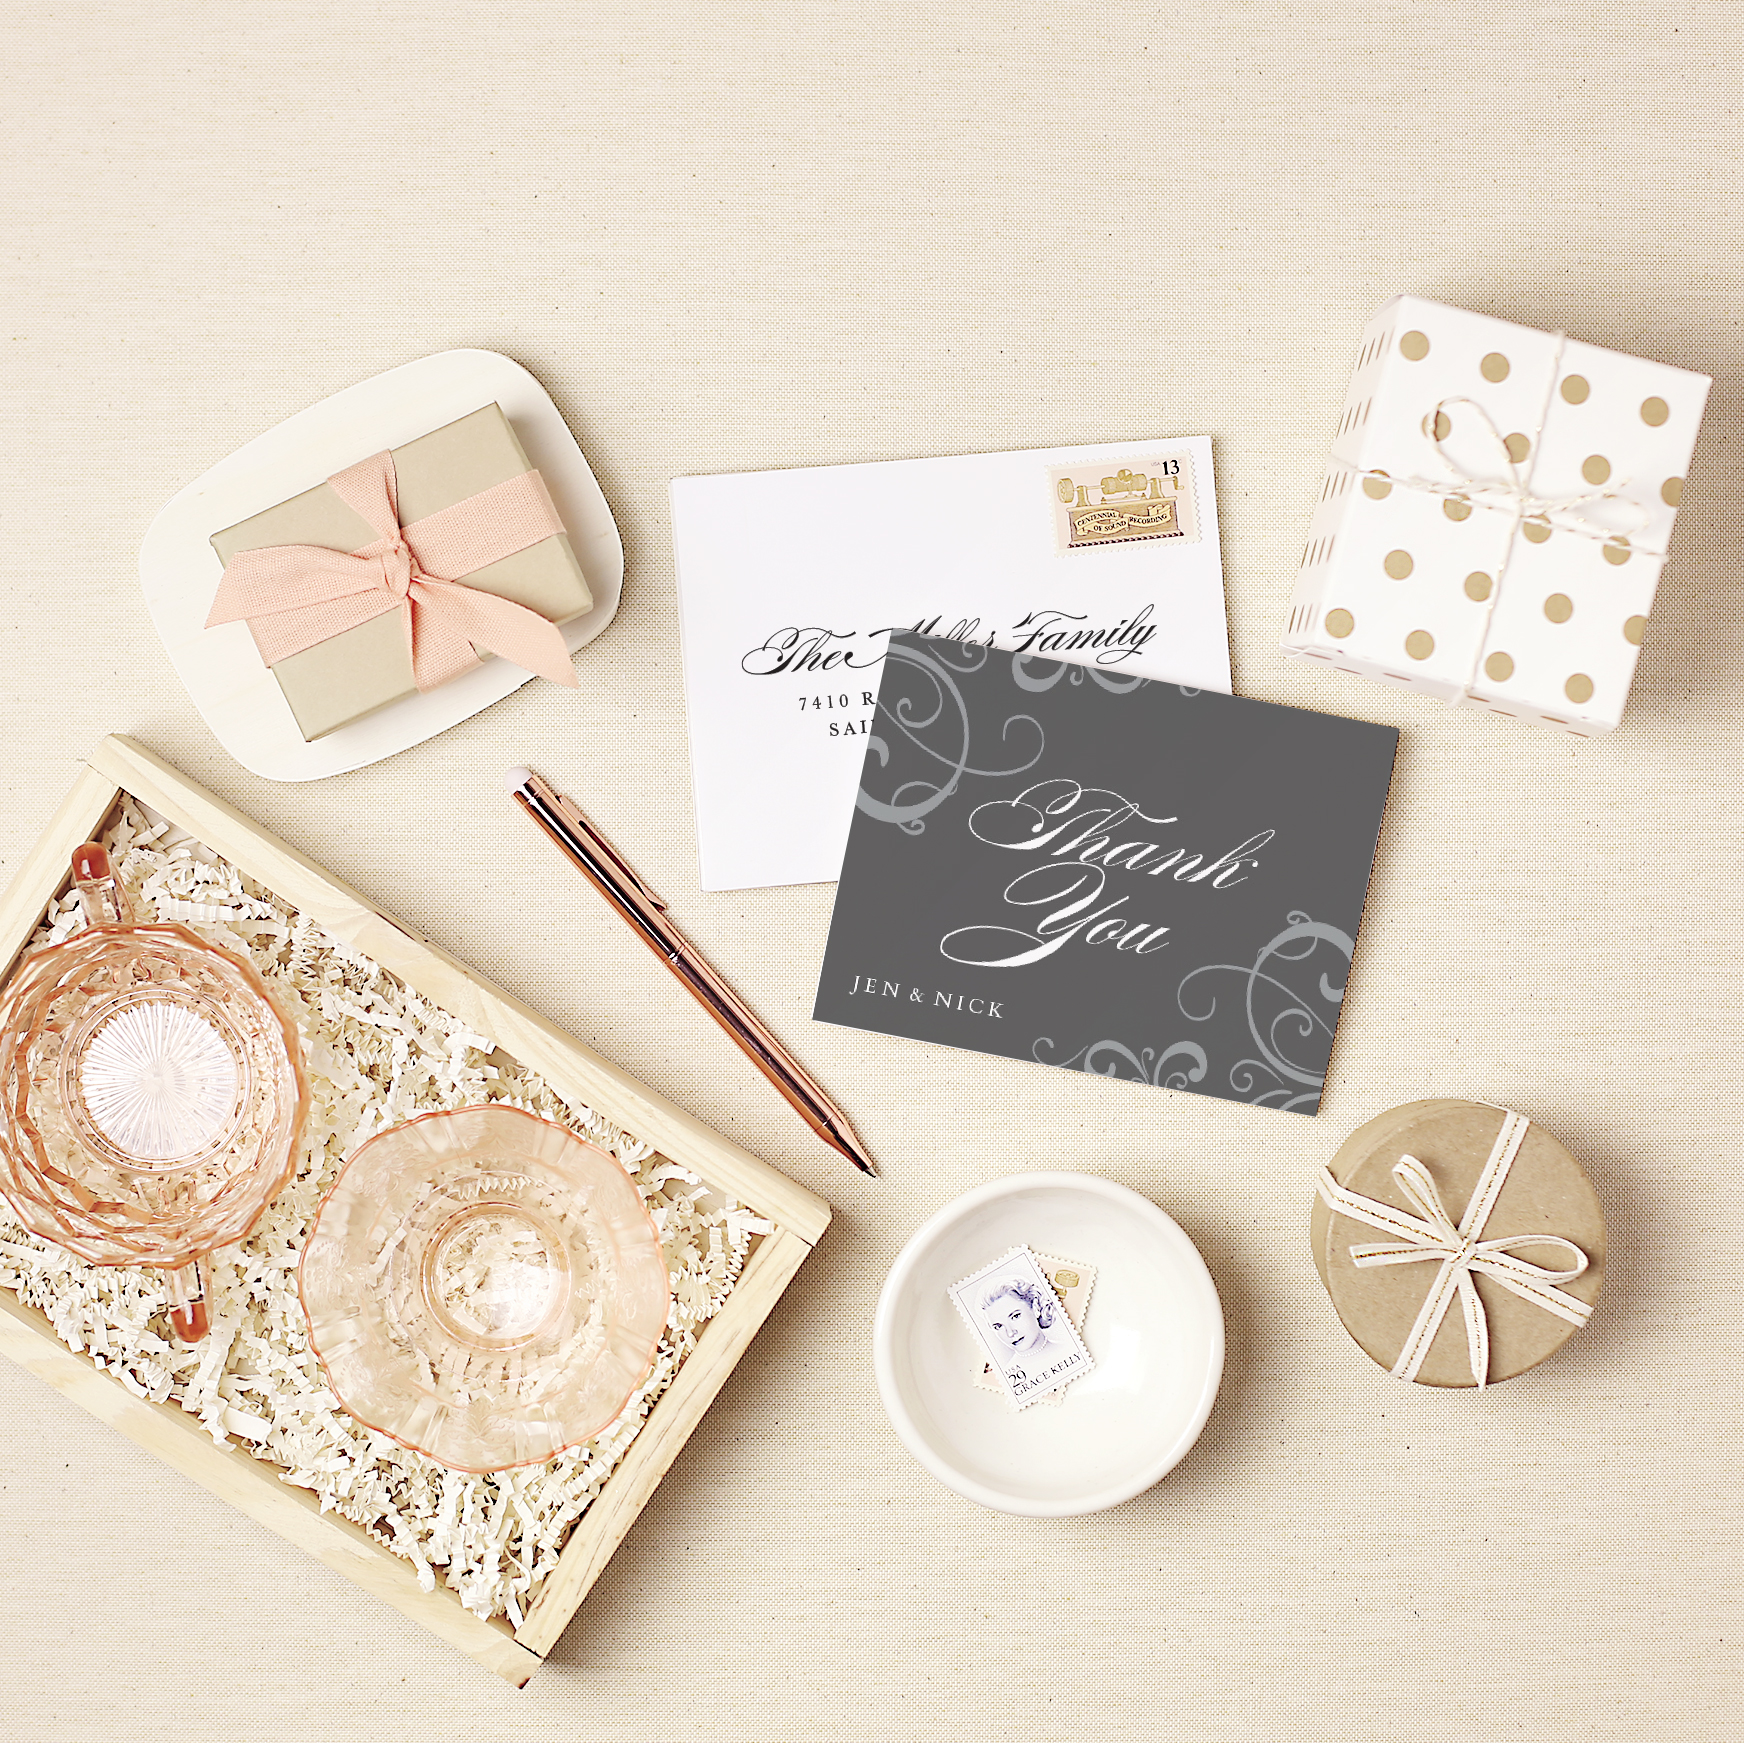 elegant and simple thank you cards and envelopes available at Basic Invite